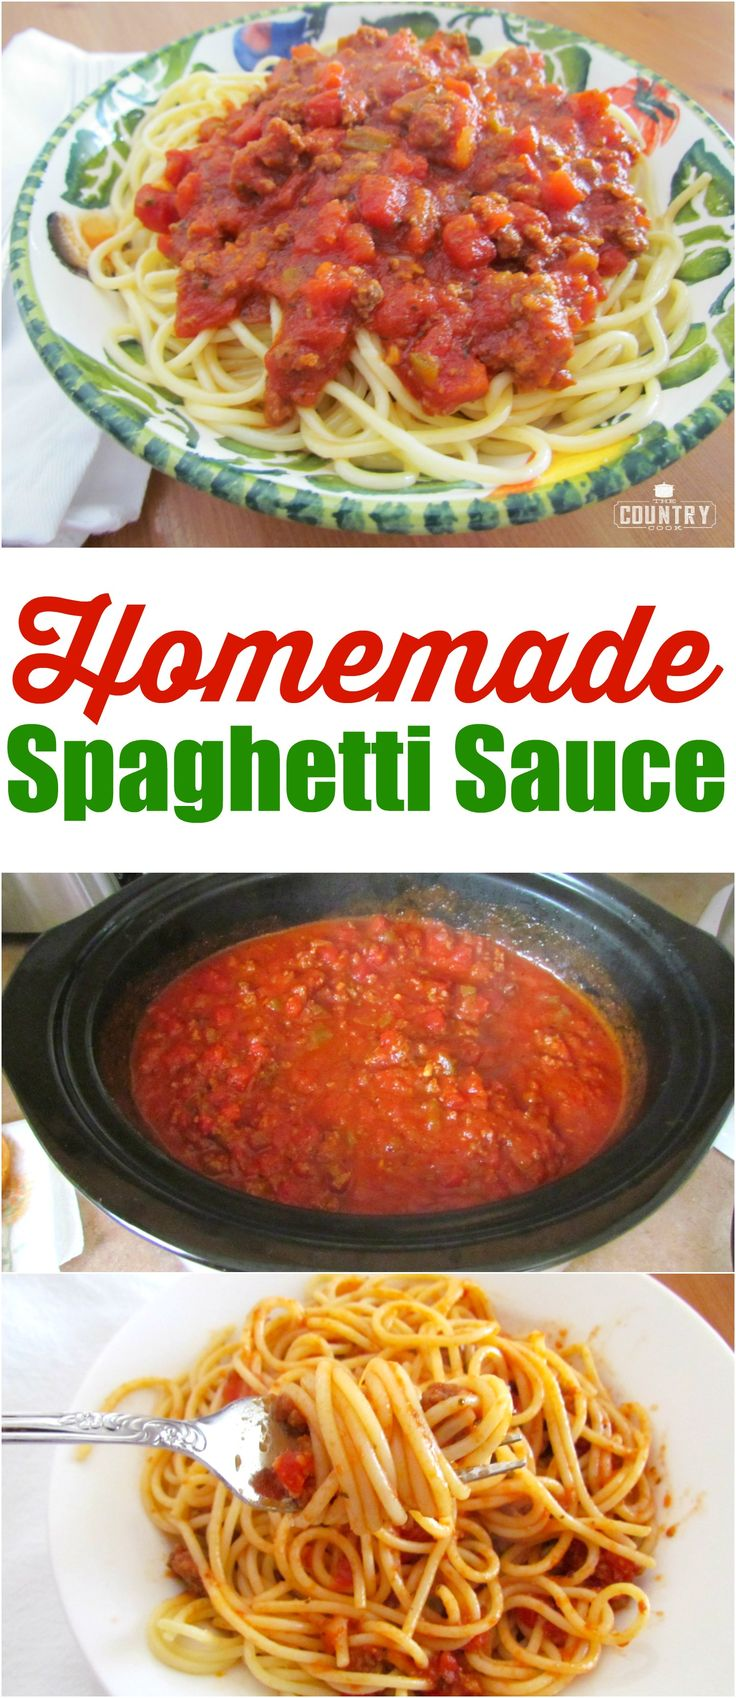 Homemade Beefy Spaghetti Sauce recipe from The Country Cook